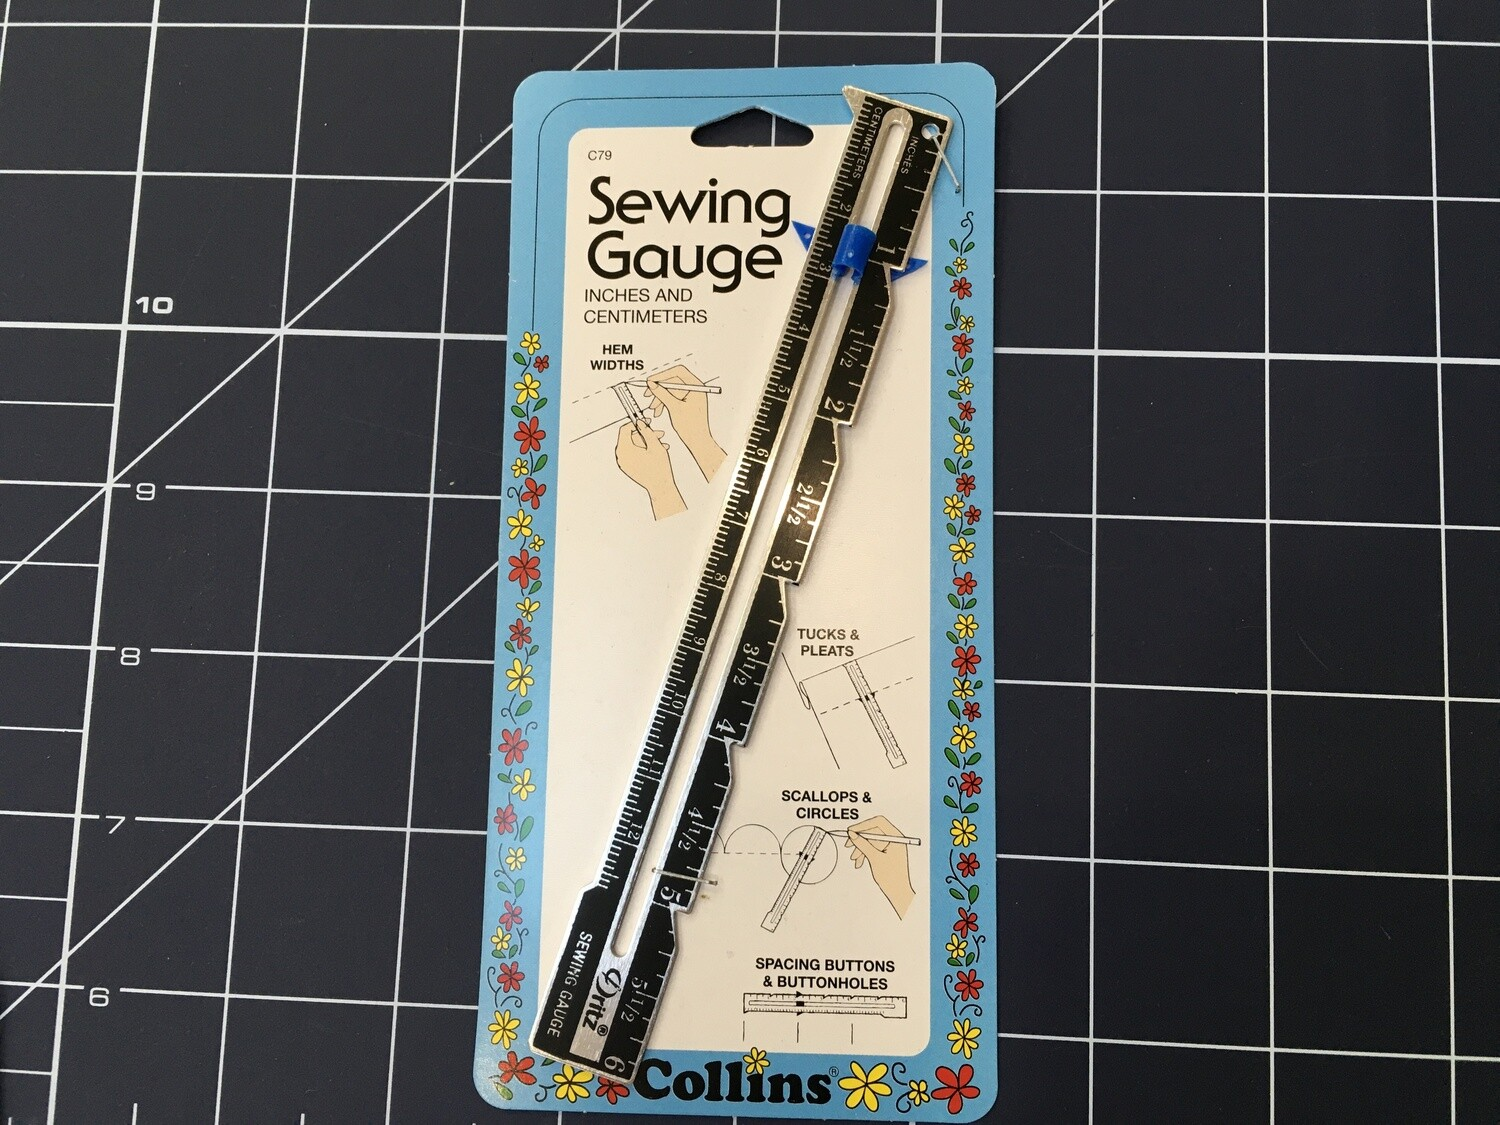 Sewing gauge